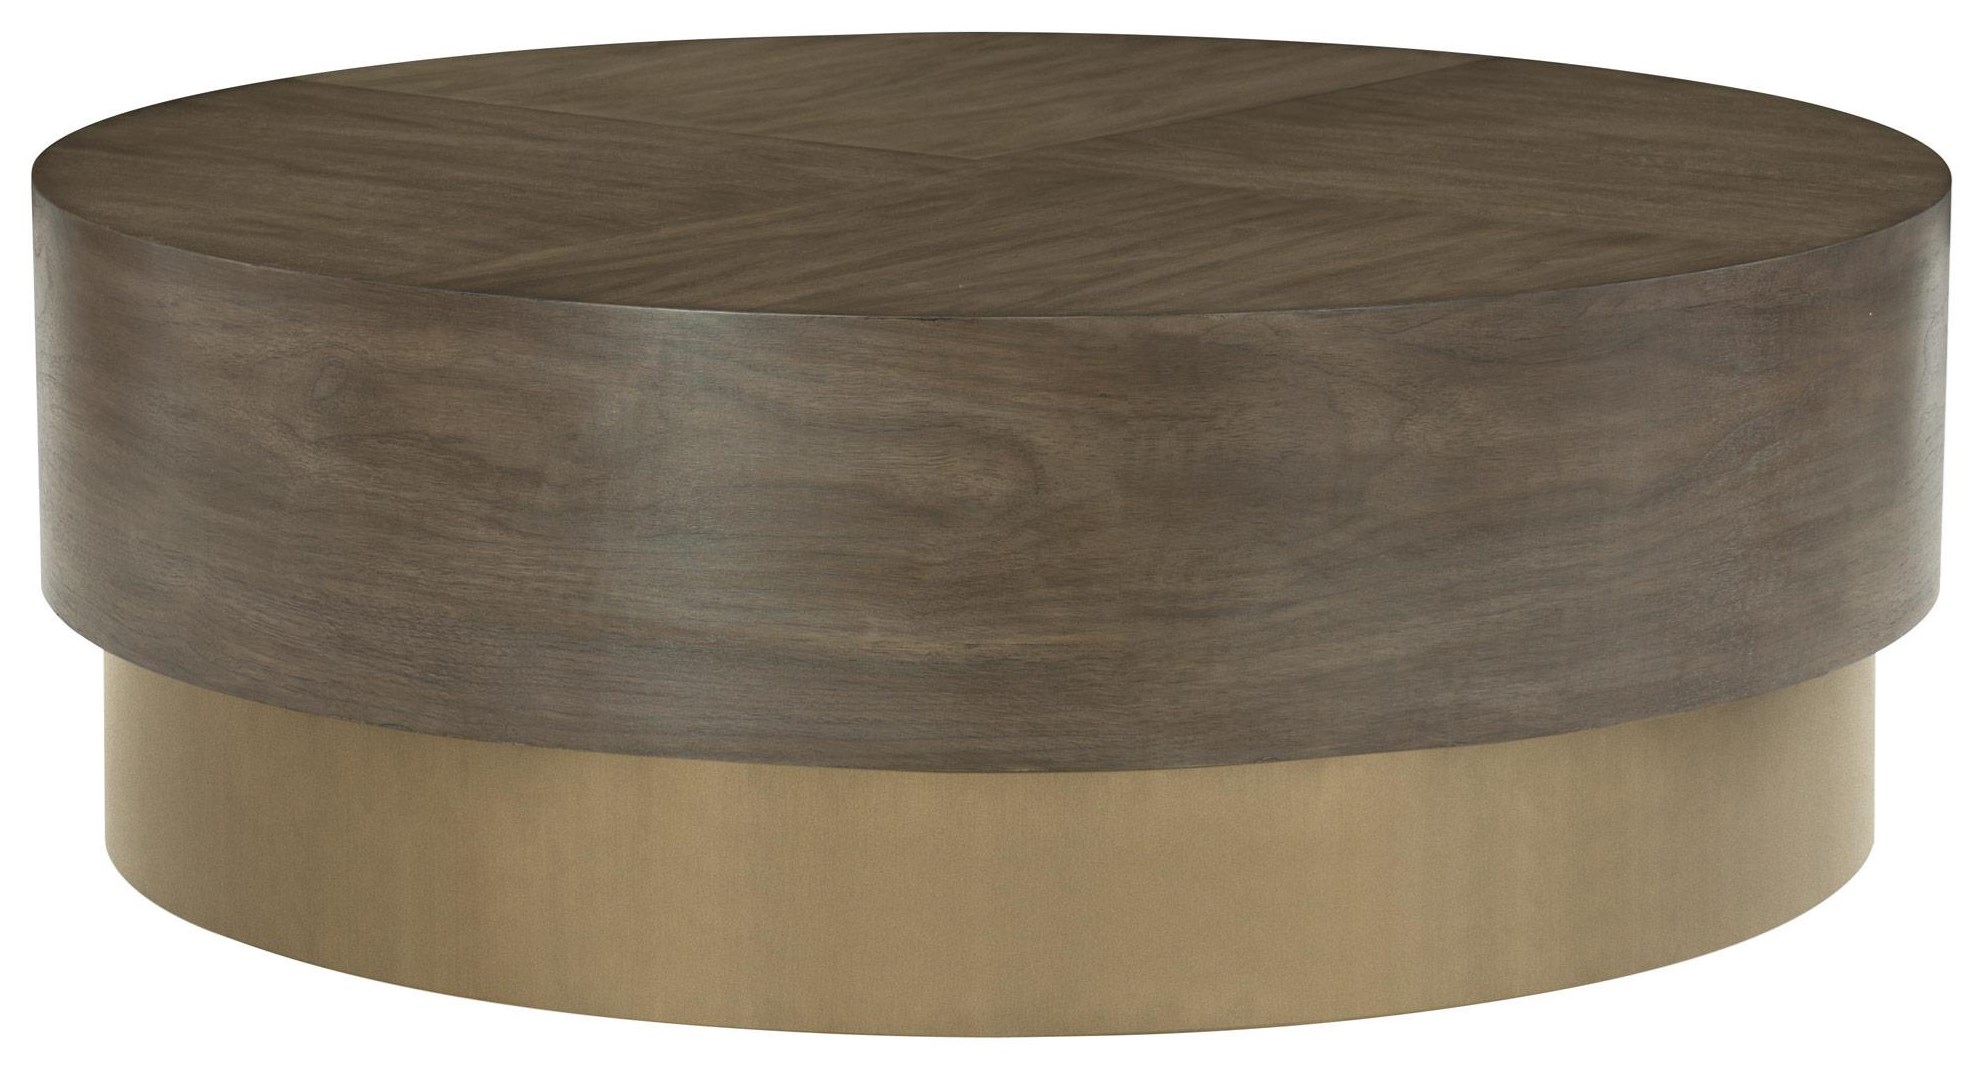 Clarendon Clarendon Round Cocktail Table by Bernhardt at Morris Home